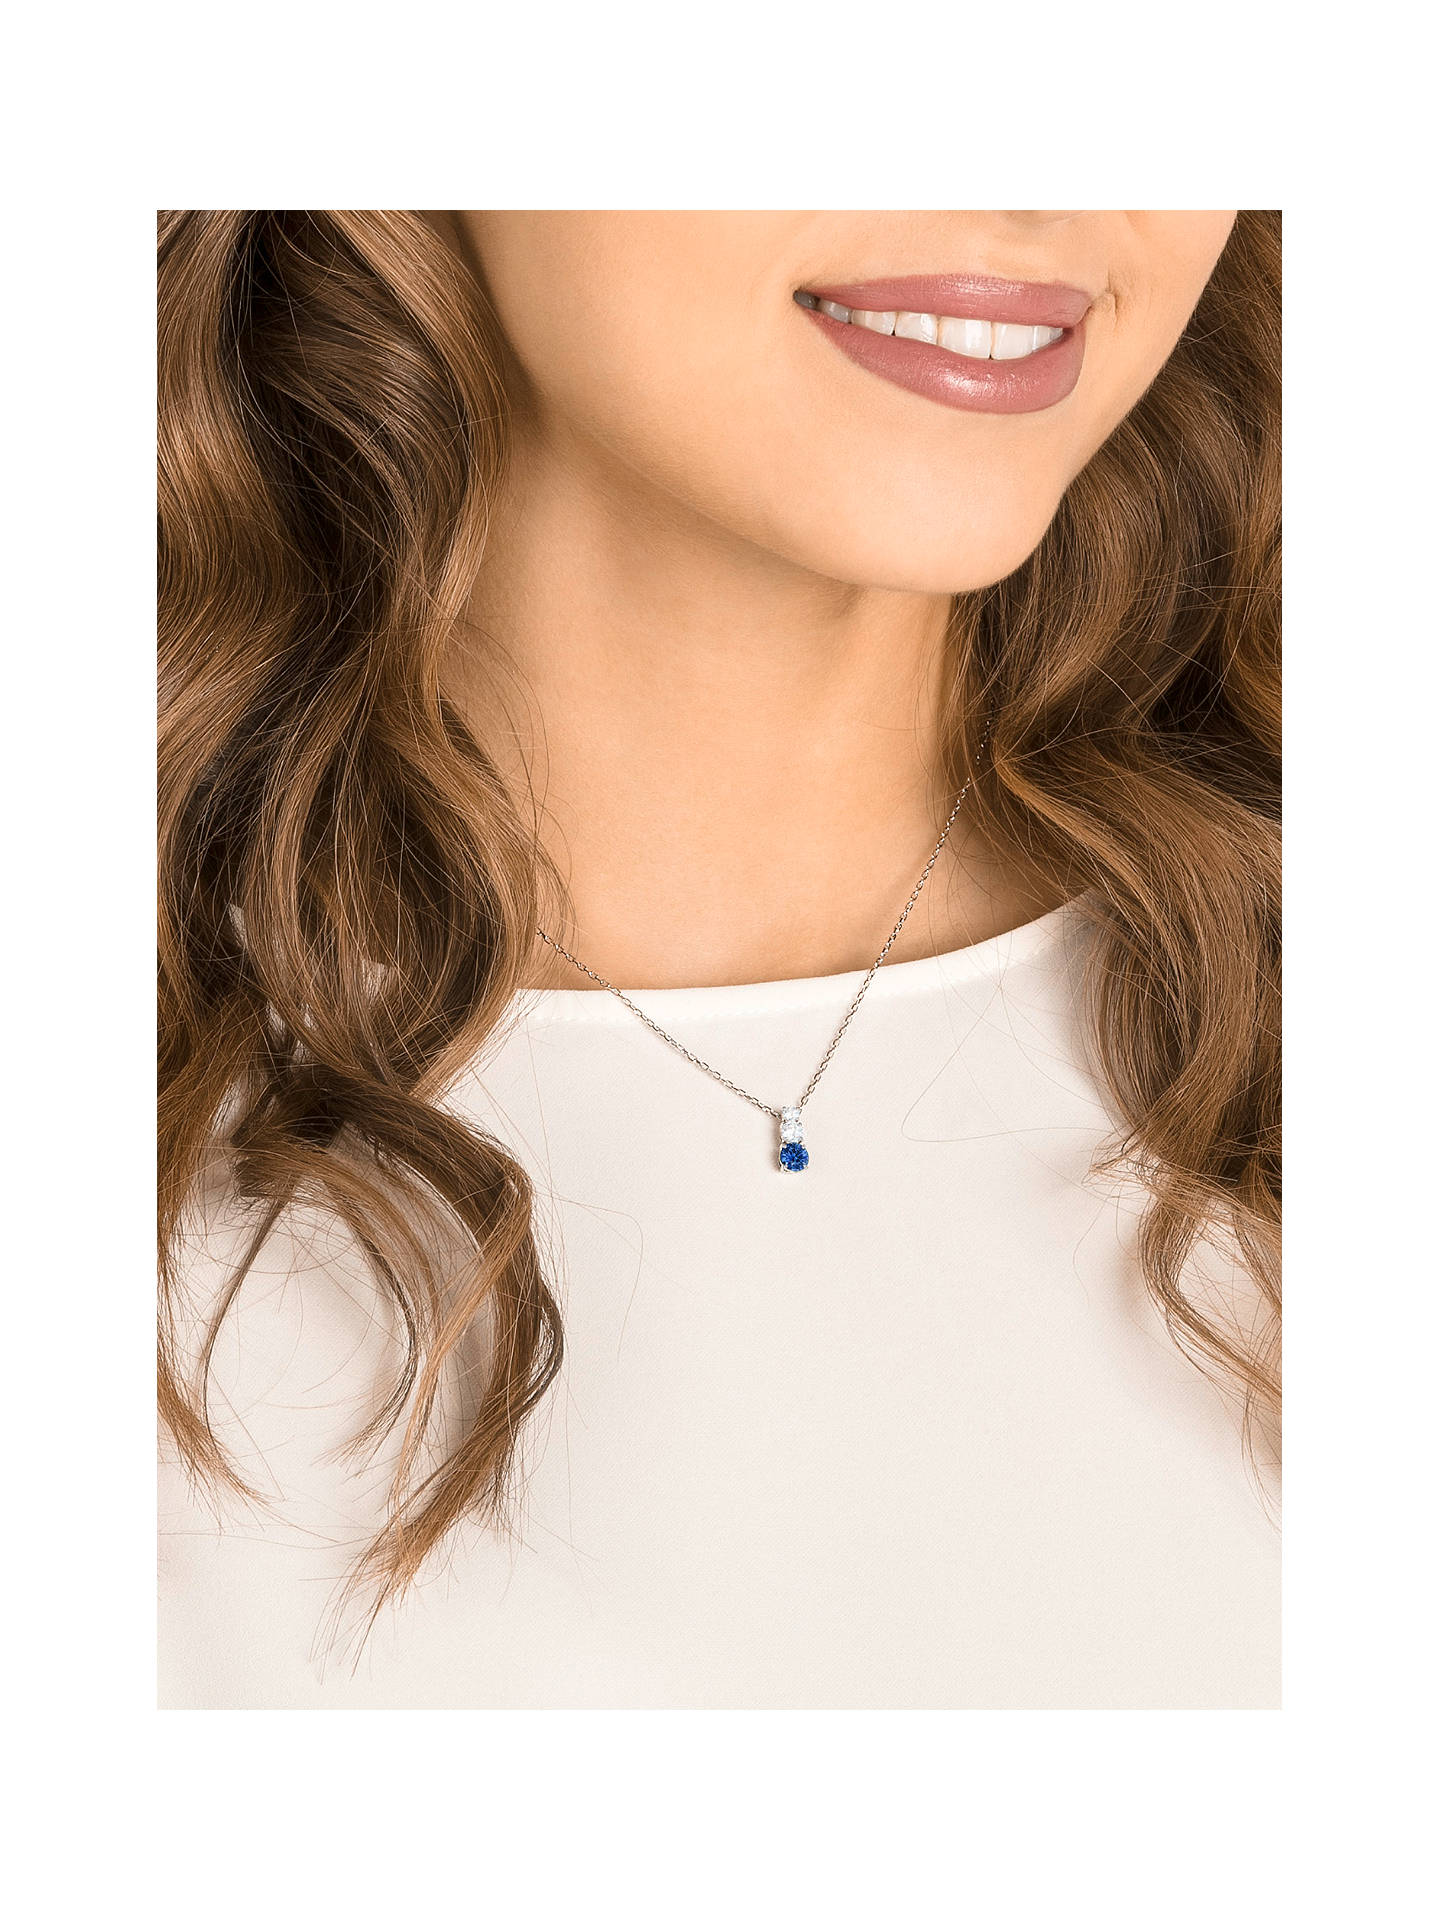 Buy Swarovski Attract Triple Crystal Pendant Necklace, Silver/Blue Online at johnlewis.com